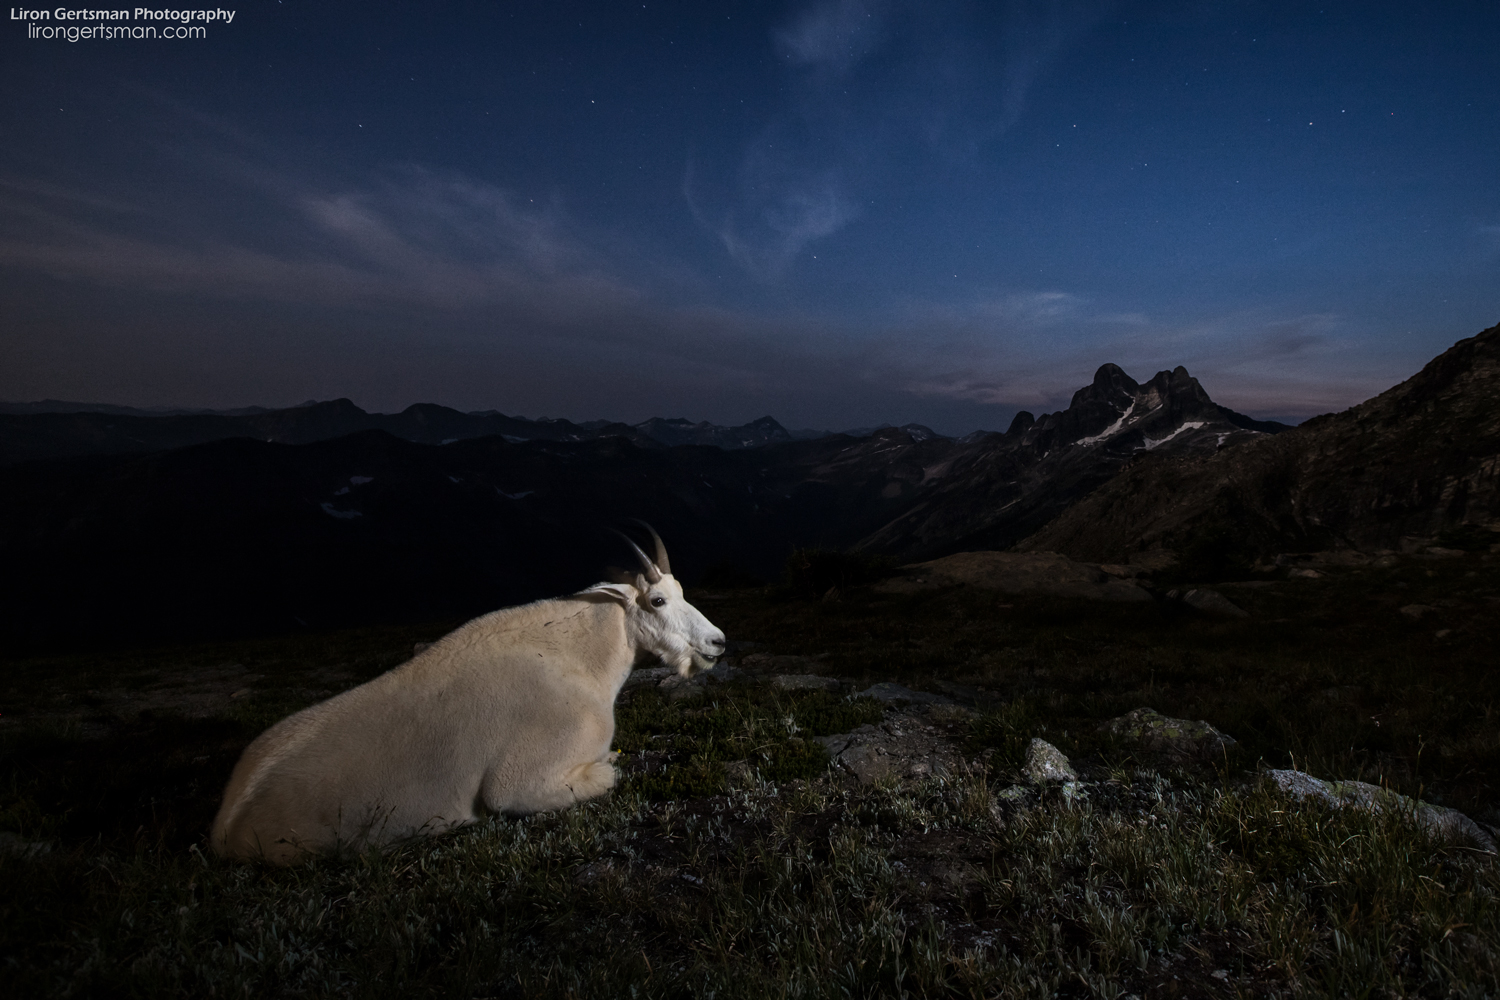 It was incredibly picturesque to observe the goats relaxing at twilight as stars began to emerge in the sky. While they were surely just resting, it almost seemed as though they were enjoying taking in the scenery as much as I was.